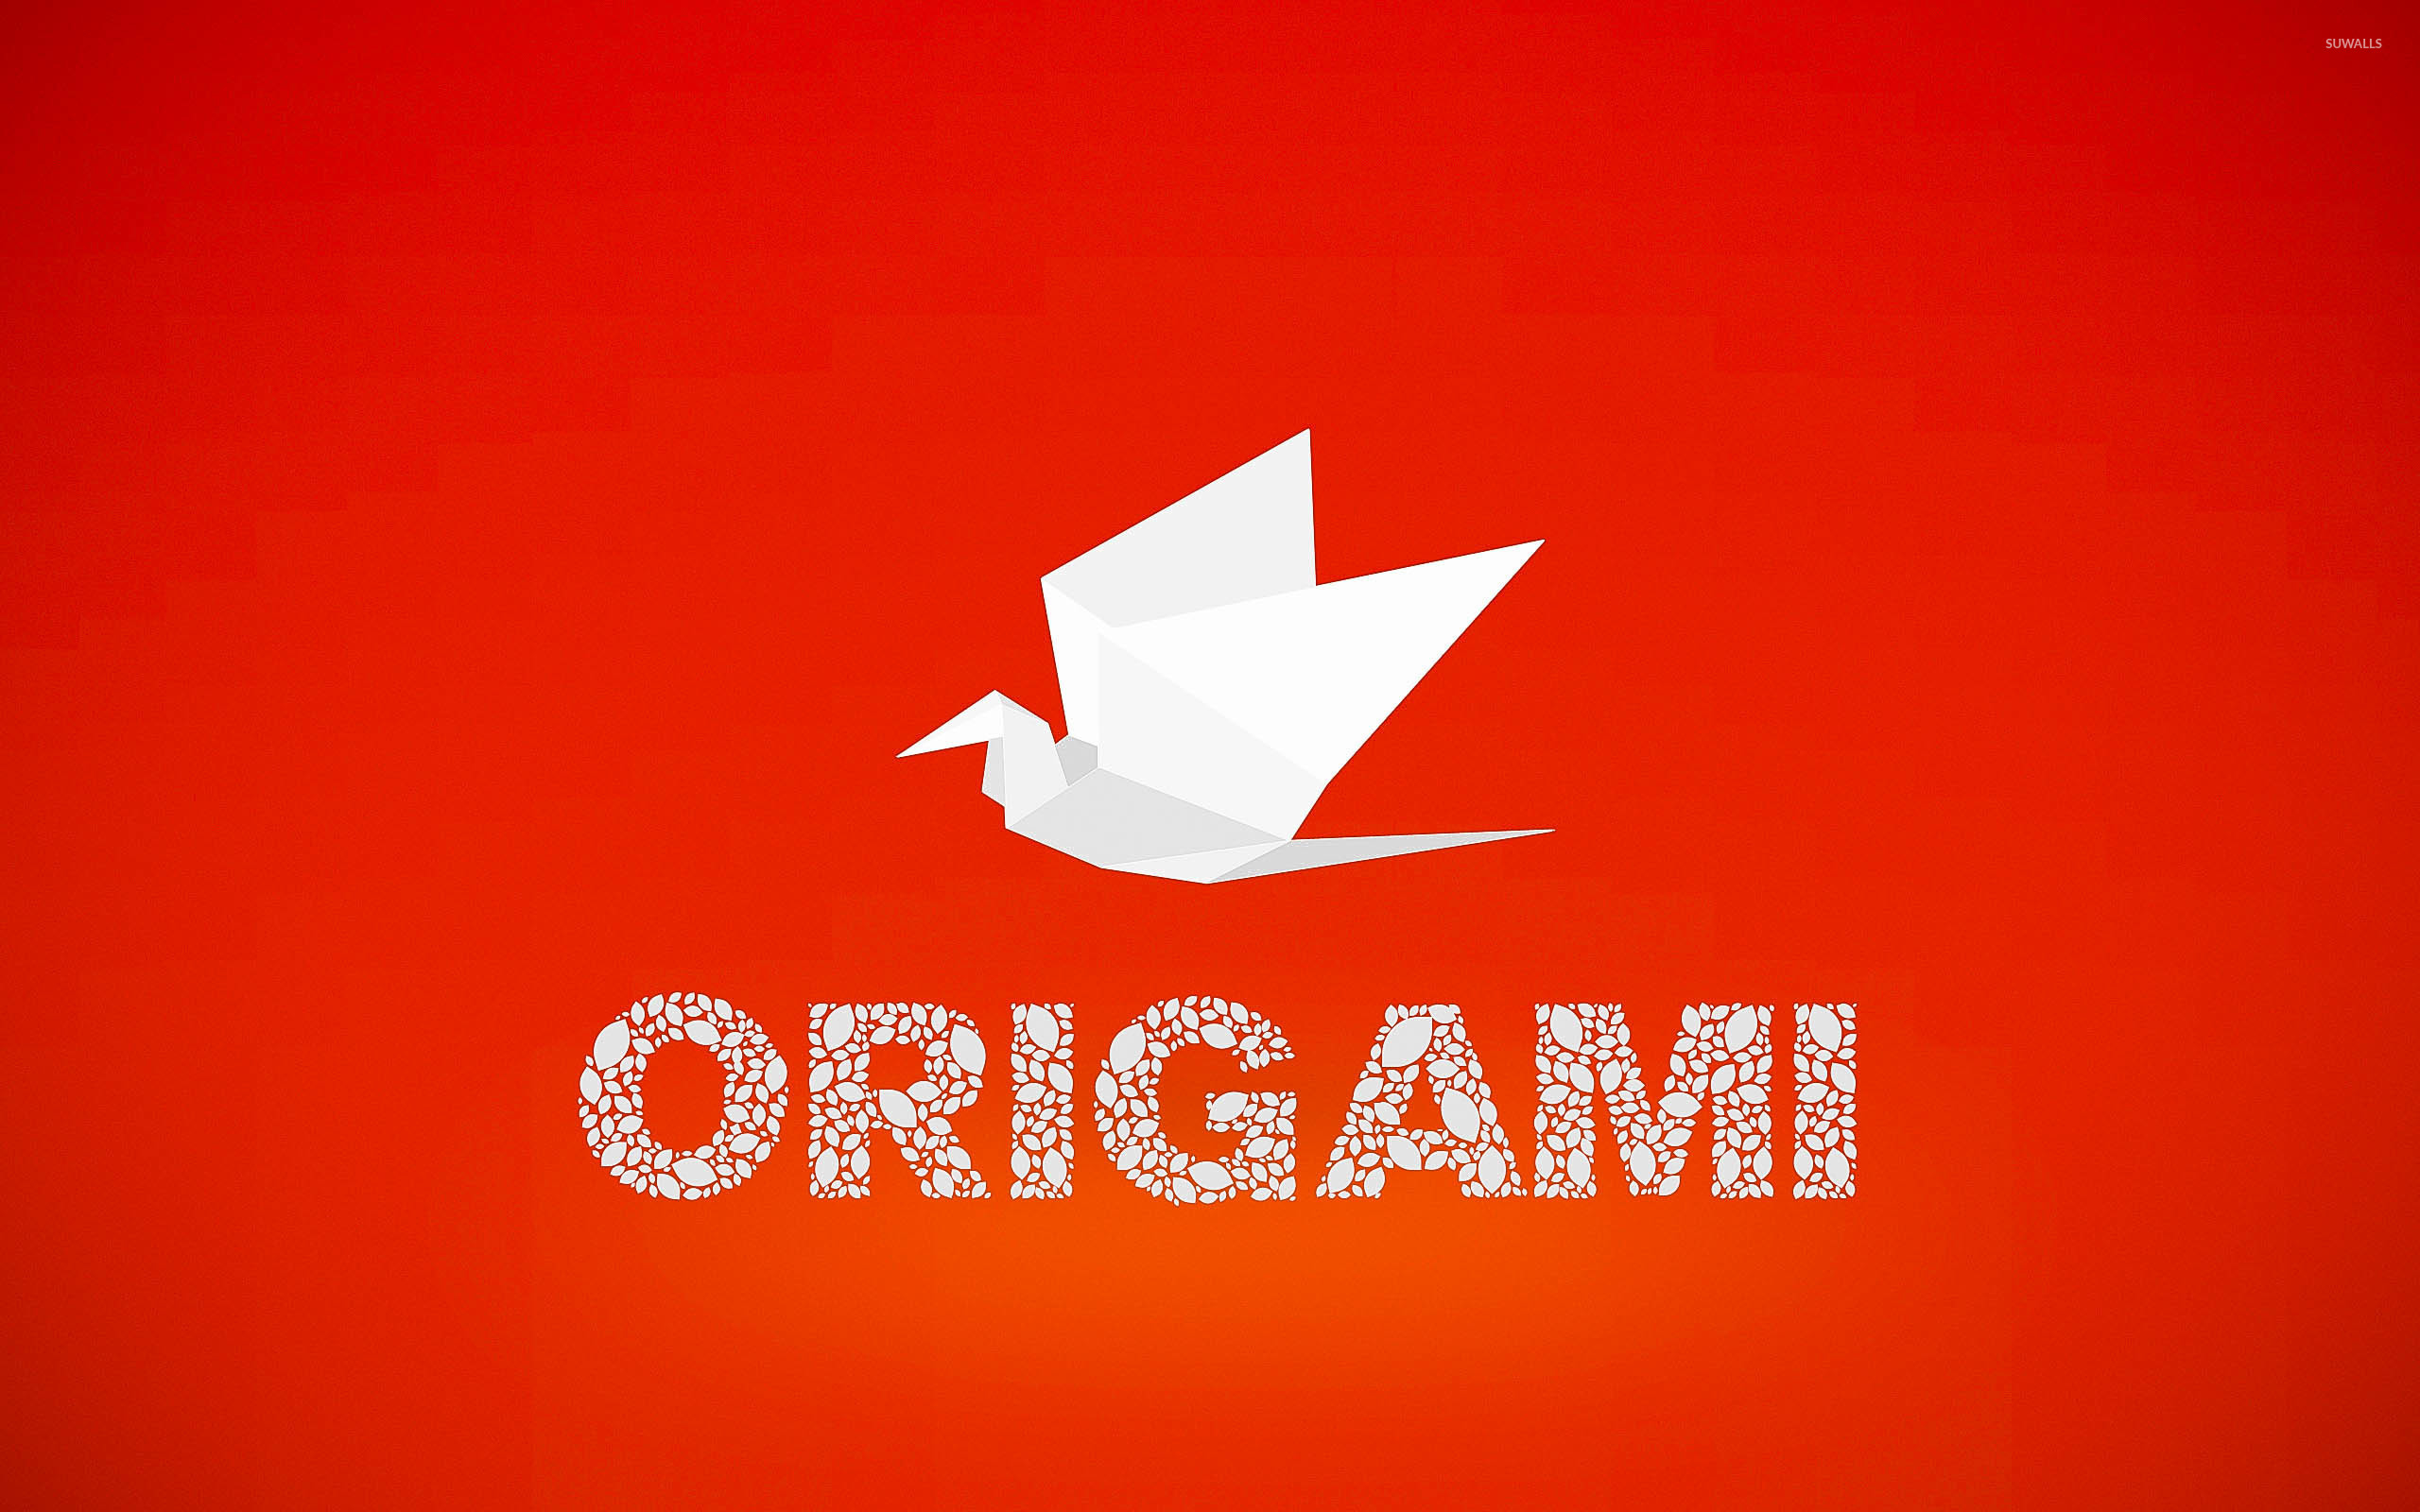 Origami Wallpaper Typography Wallpapers 46033 HD Wallpapers Download Free Images Wallpaper [1000image.com]